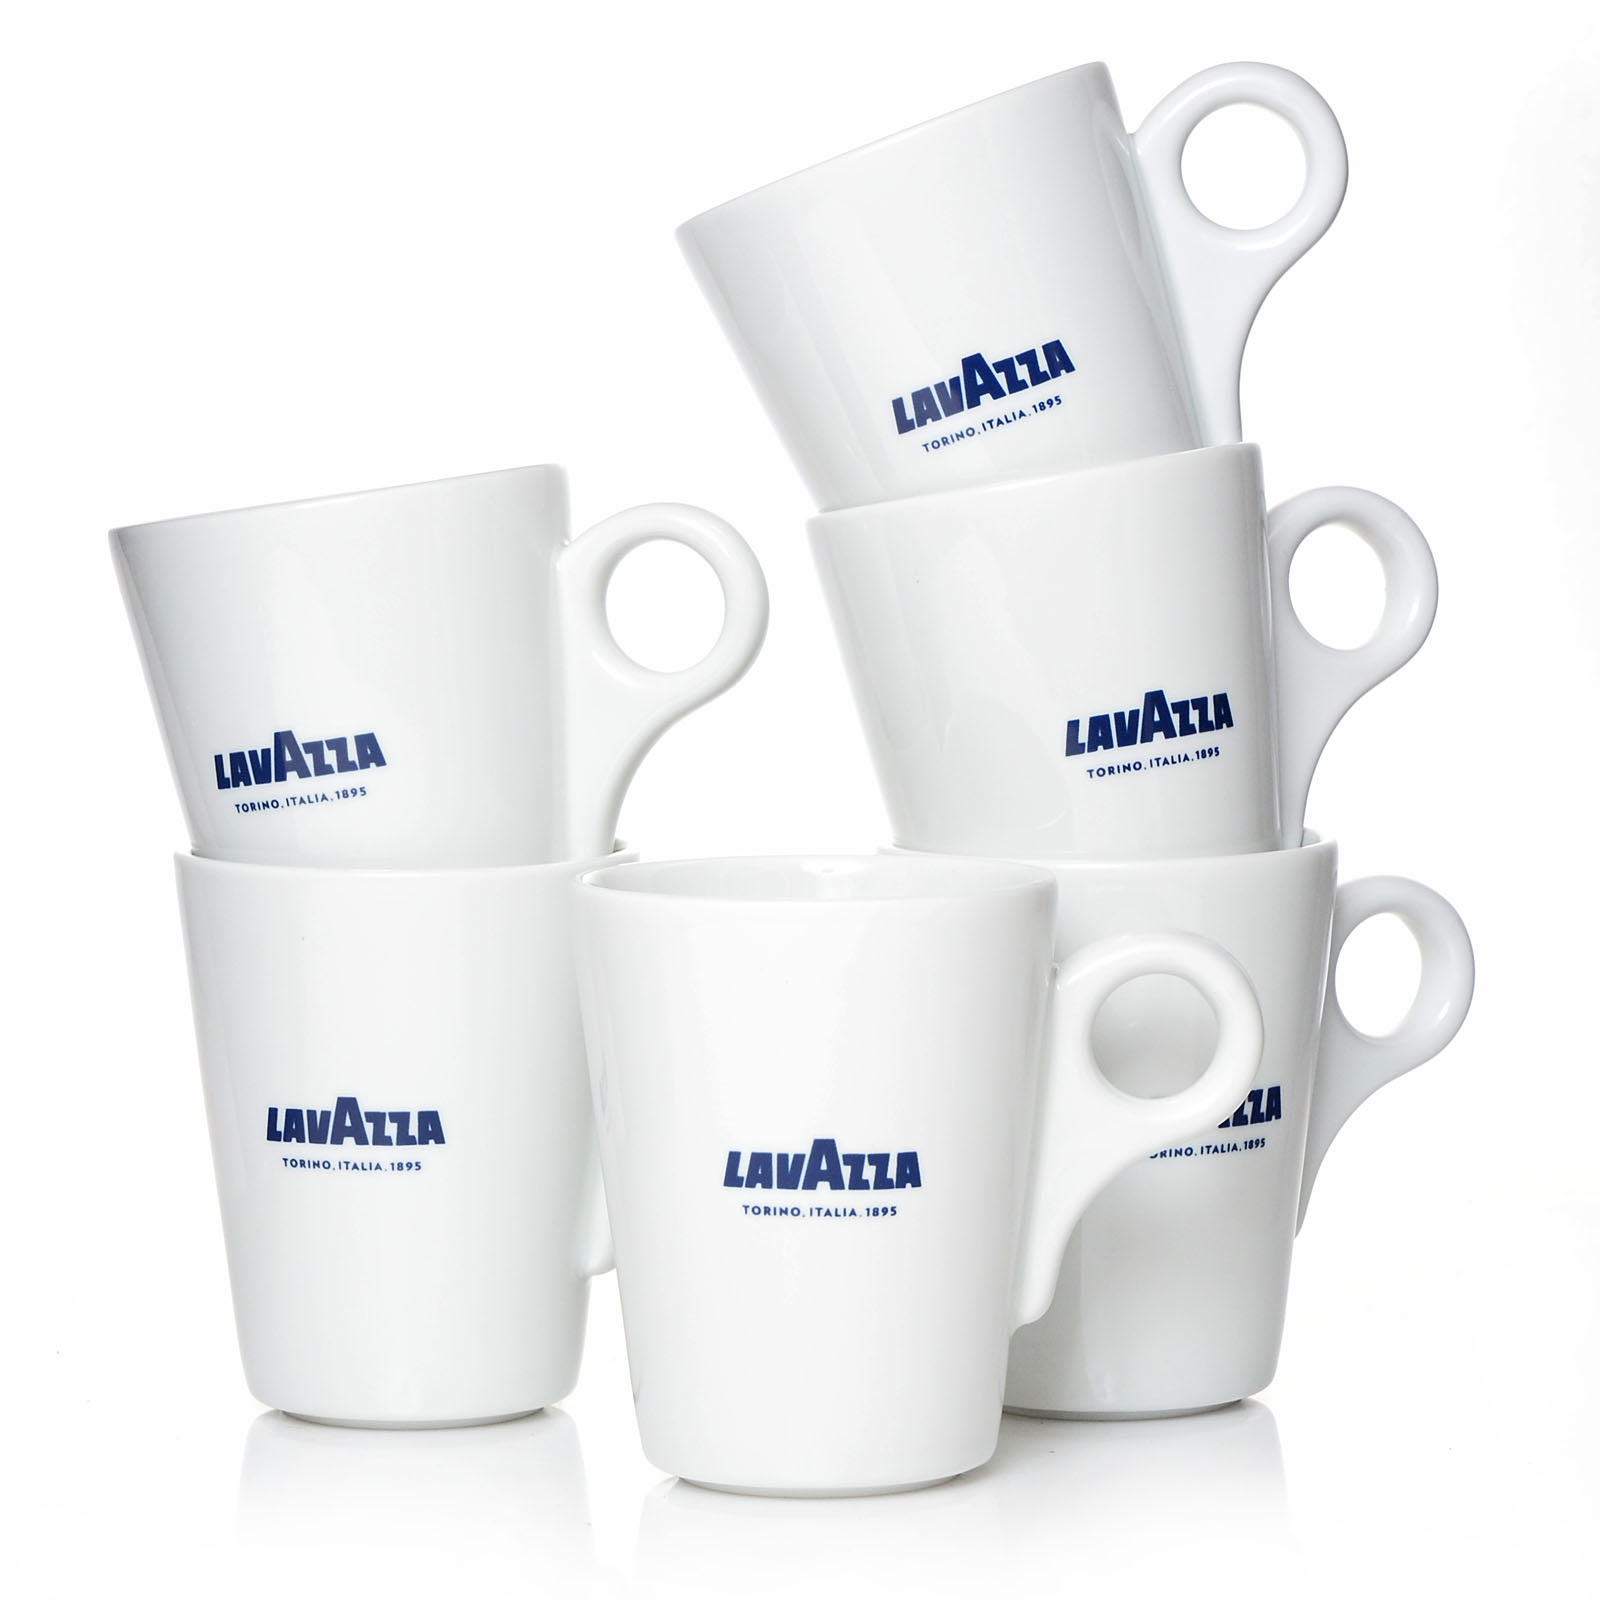 lavazza mug kaffeebecher 6 x 320 ml kaffeegeschirr mugs blu collection. Black Bedroom Furniture Sets. Home Design Ideas